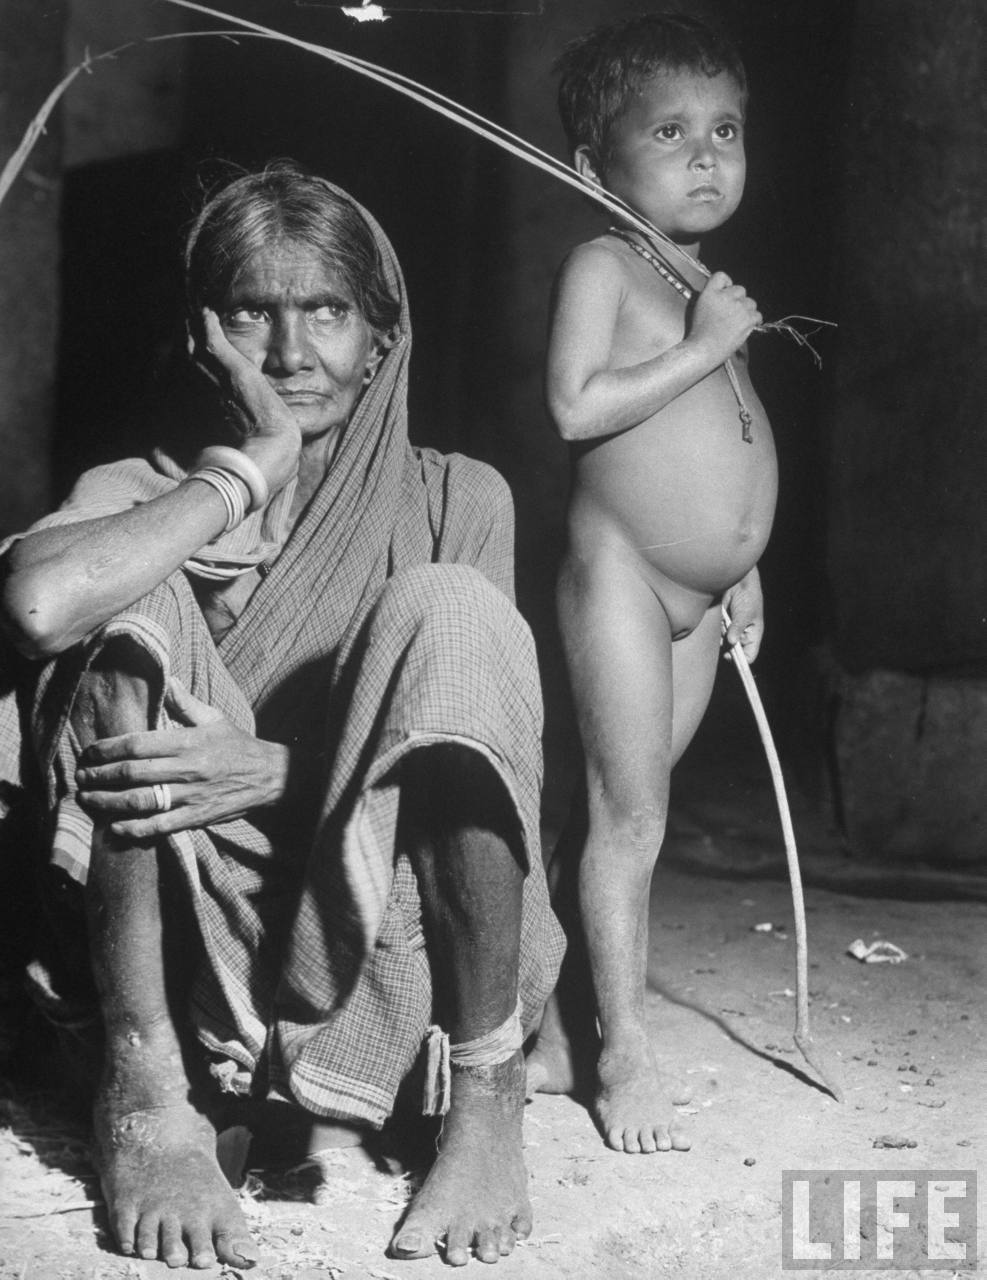 Starving Indian woman with swollen ankles & feet because she suffers from dropsy as young daughter stands by with swollen belly from hunger during famine crisis. (Photographer - Margaret Bourke-White; Date taken-1946; picture courtesy - life.com). Click for larger image.